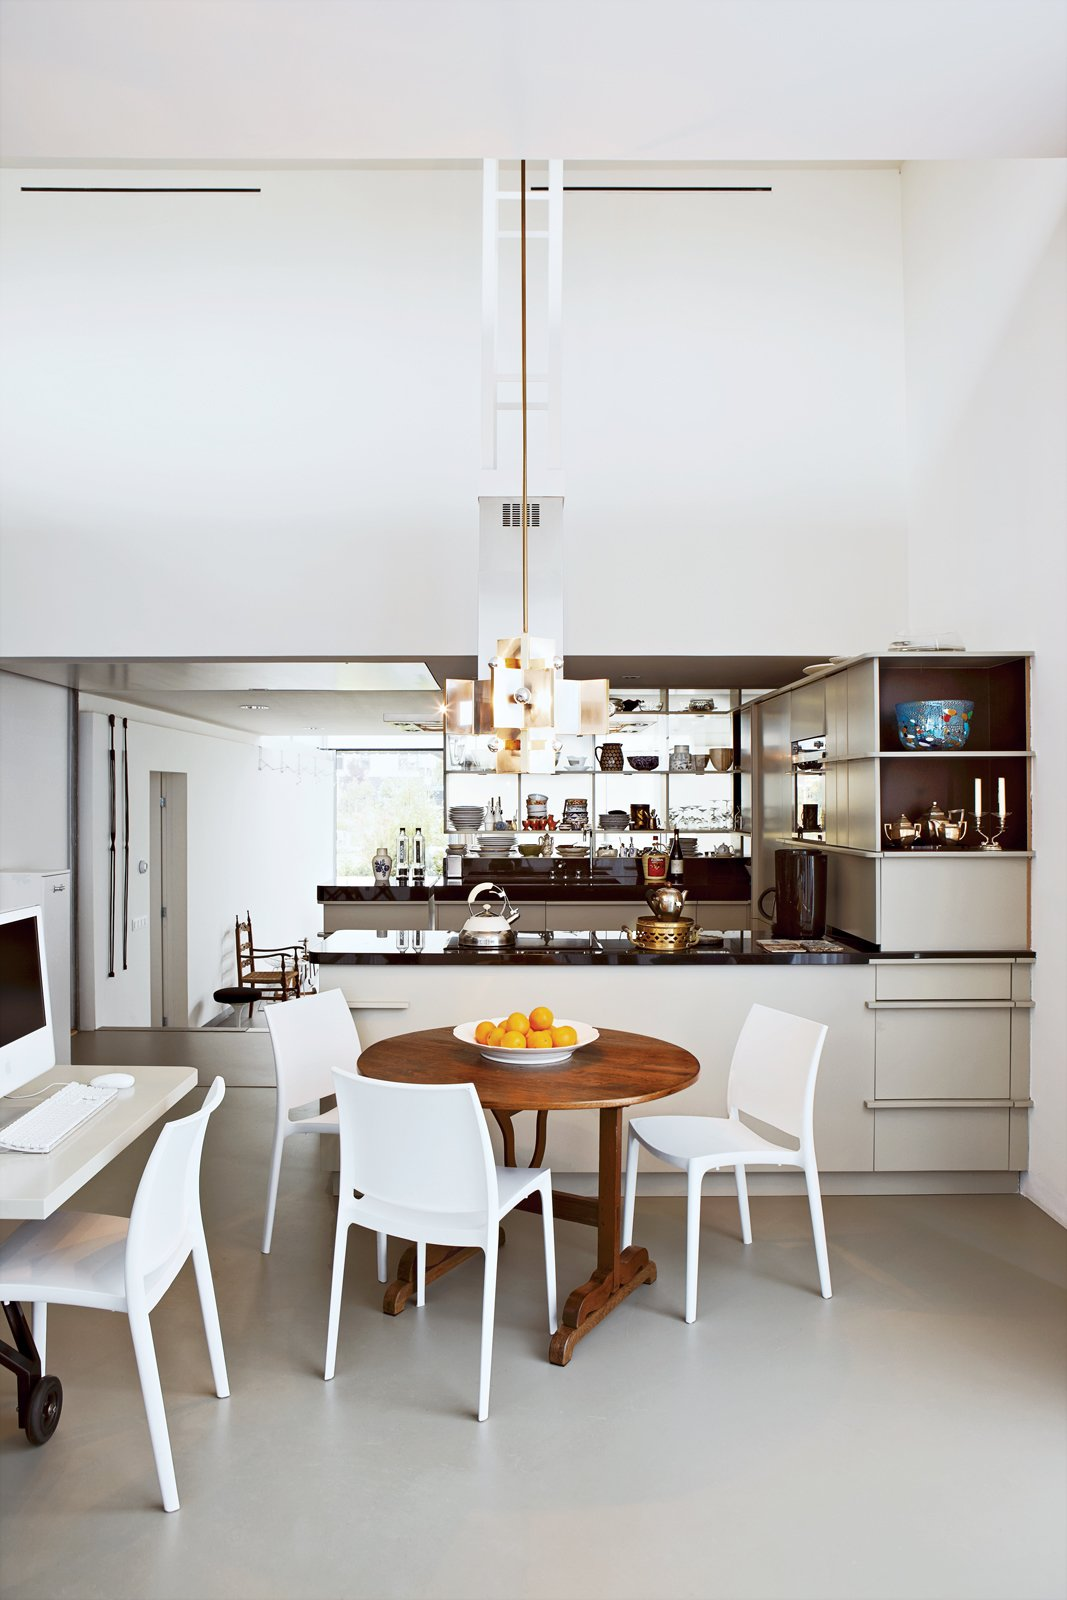 The kitchen frames a natural division between the public and private spaces of the house. The couple's private dining area features a round wooden table by Frank Bolink, and white chairs that are from Hema, a low-cost Dutch retailer.  Photo 4 of 14 in This Home Takes Recycling to the Next Level